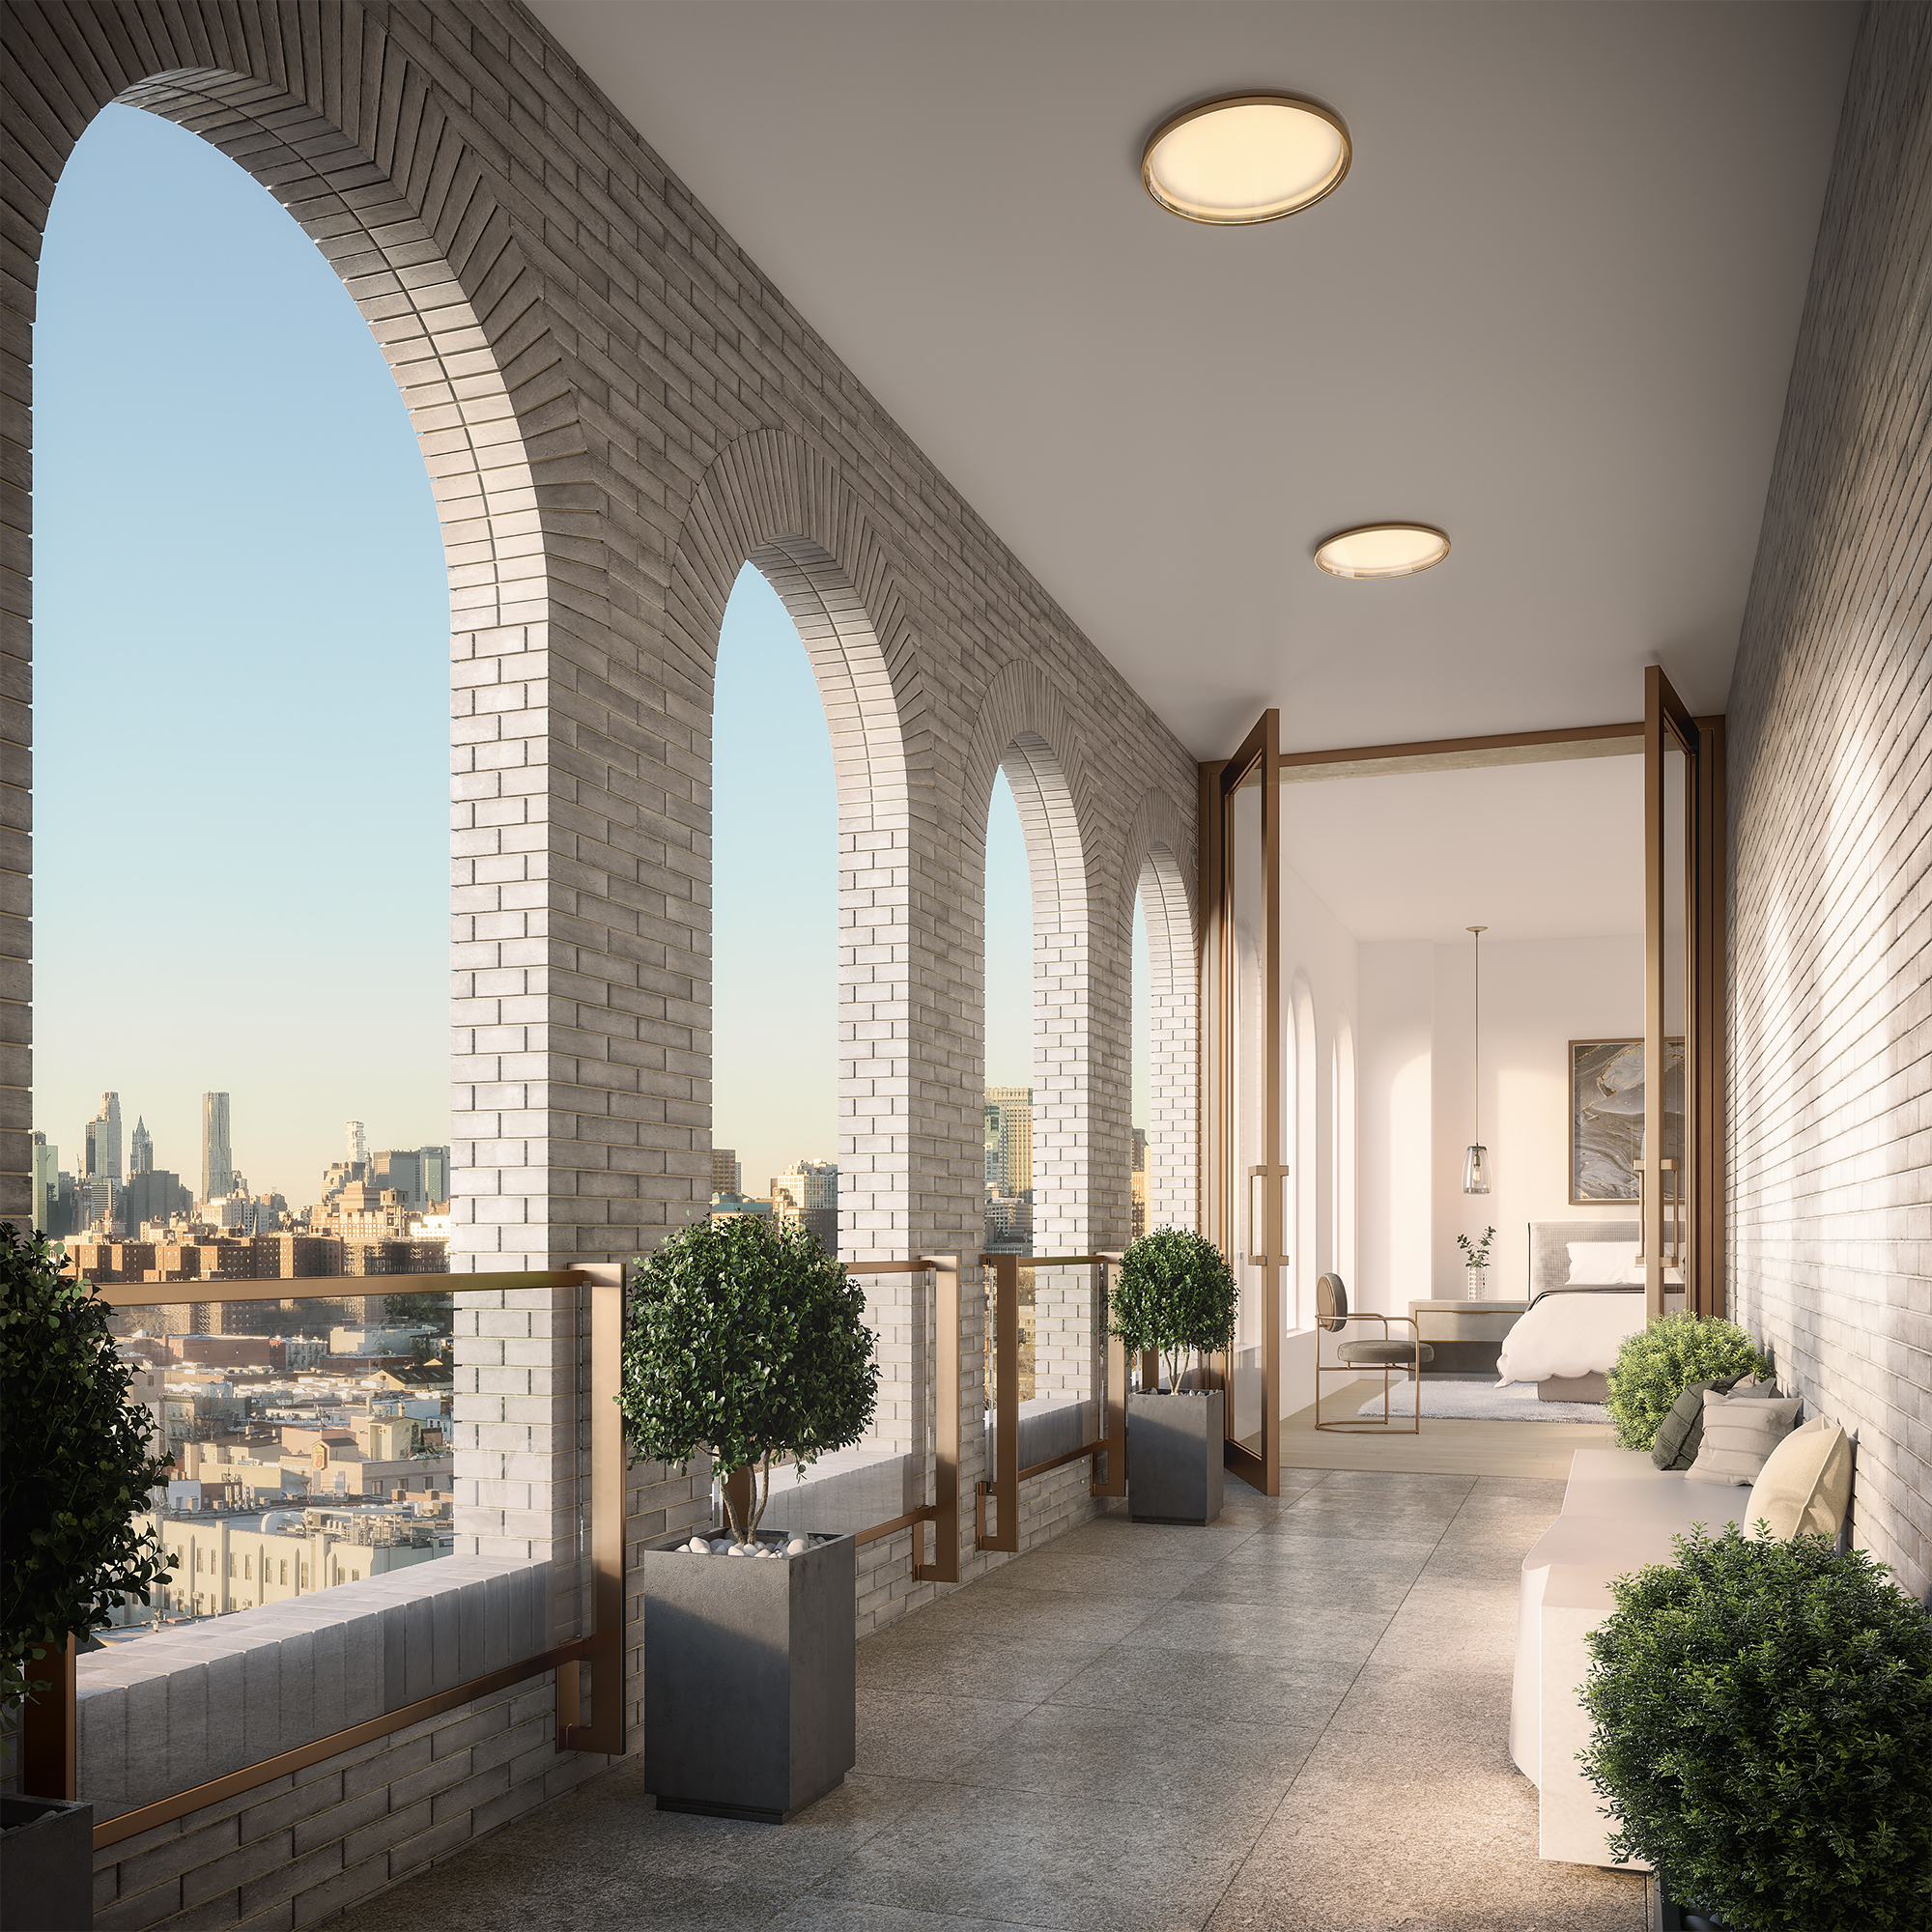 Sales Have Launched At The INC Architecture-Designed Condo Parlour In Park Slope, Brooklyn